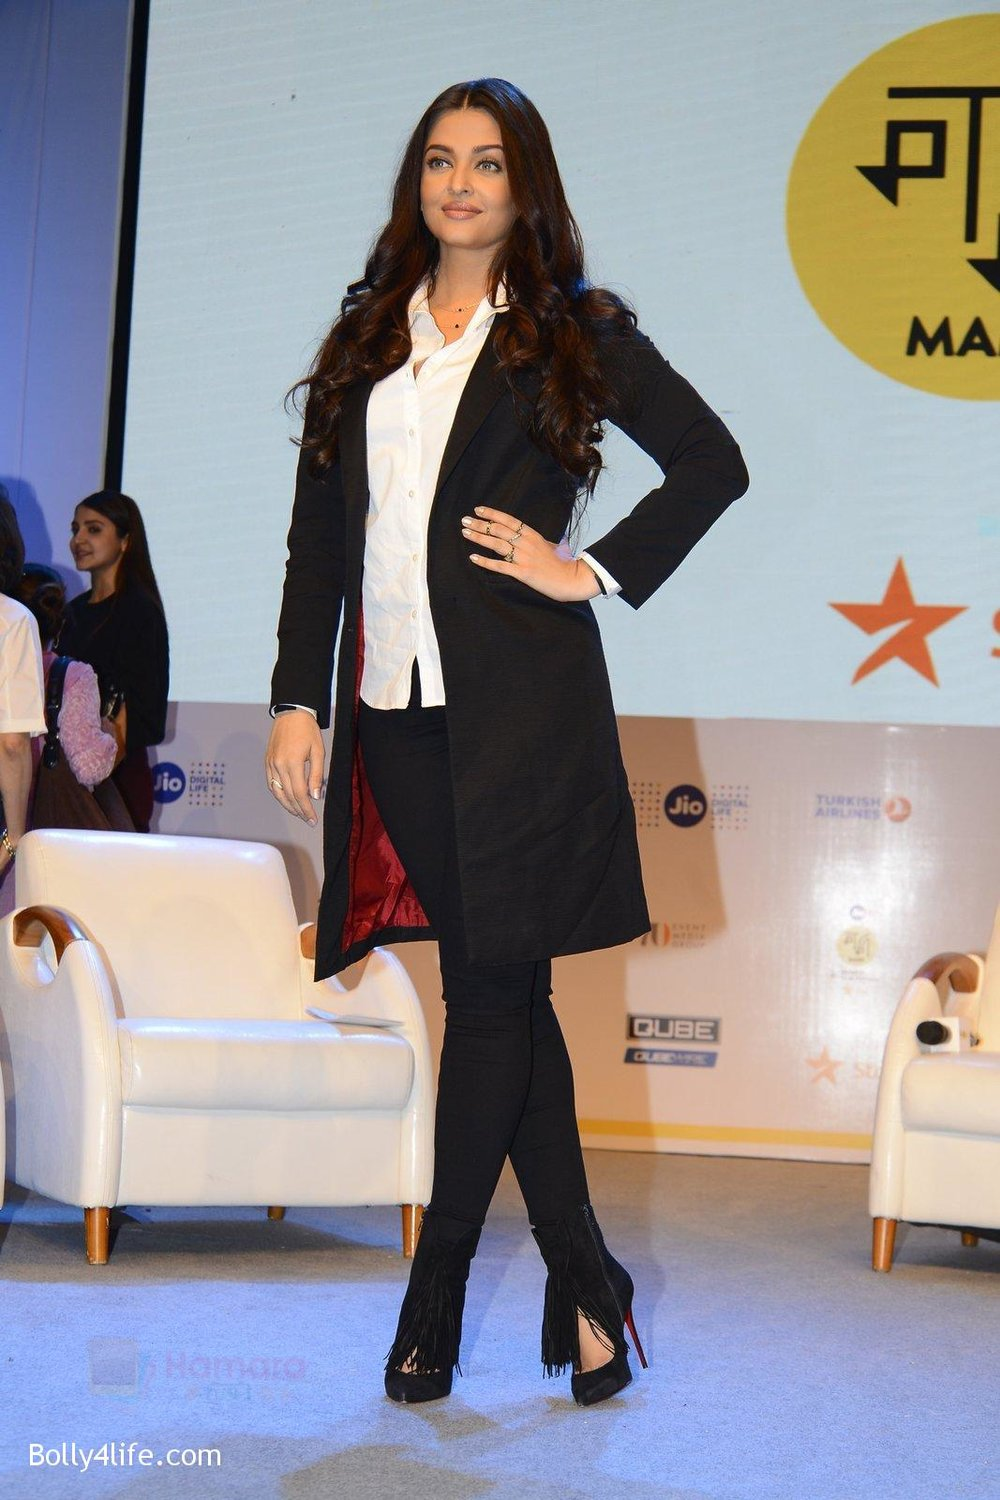 Aishwarya-Rai-talk-about-their-movie-Ae-Dil-Hai-Mushkil-during-the-Jio-MAMI-18th-Mumbai-Film-Festival-with-star-on-21st-Oct-2016-28.jpg